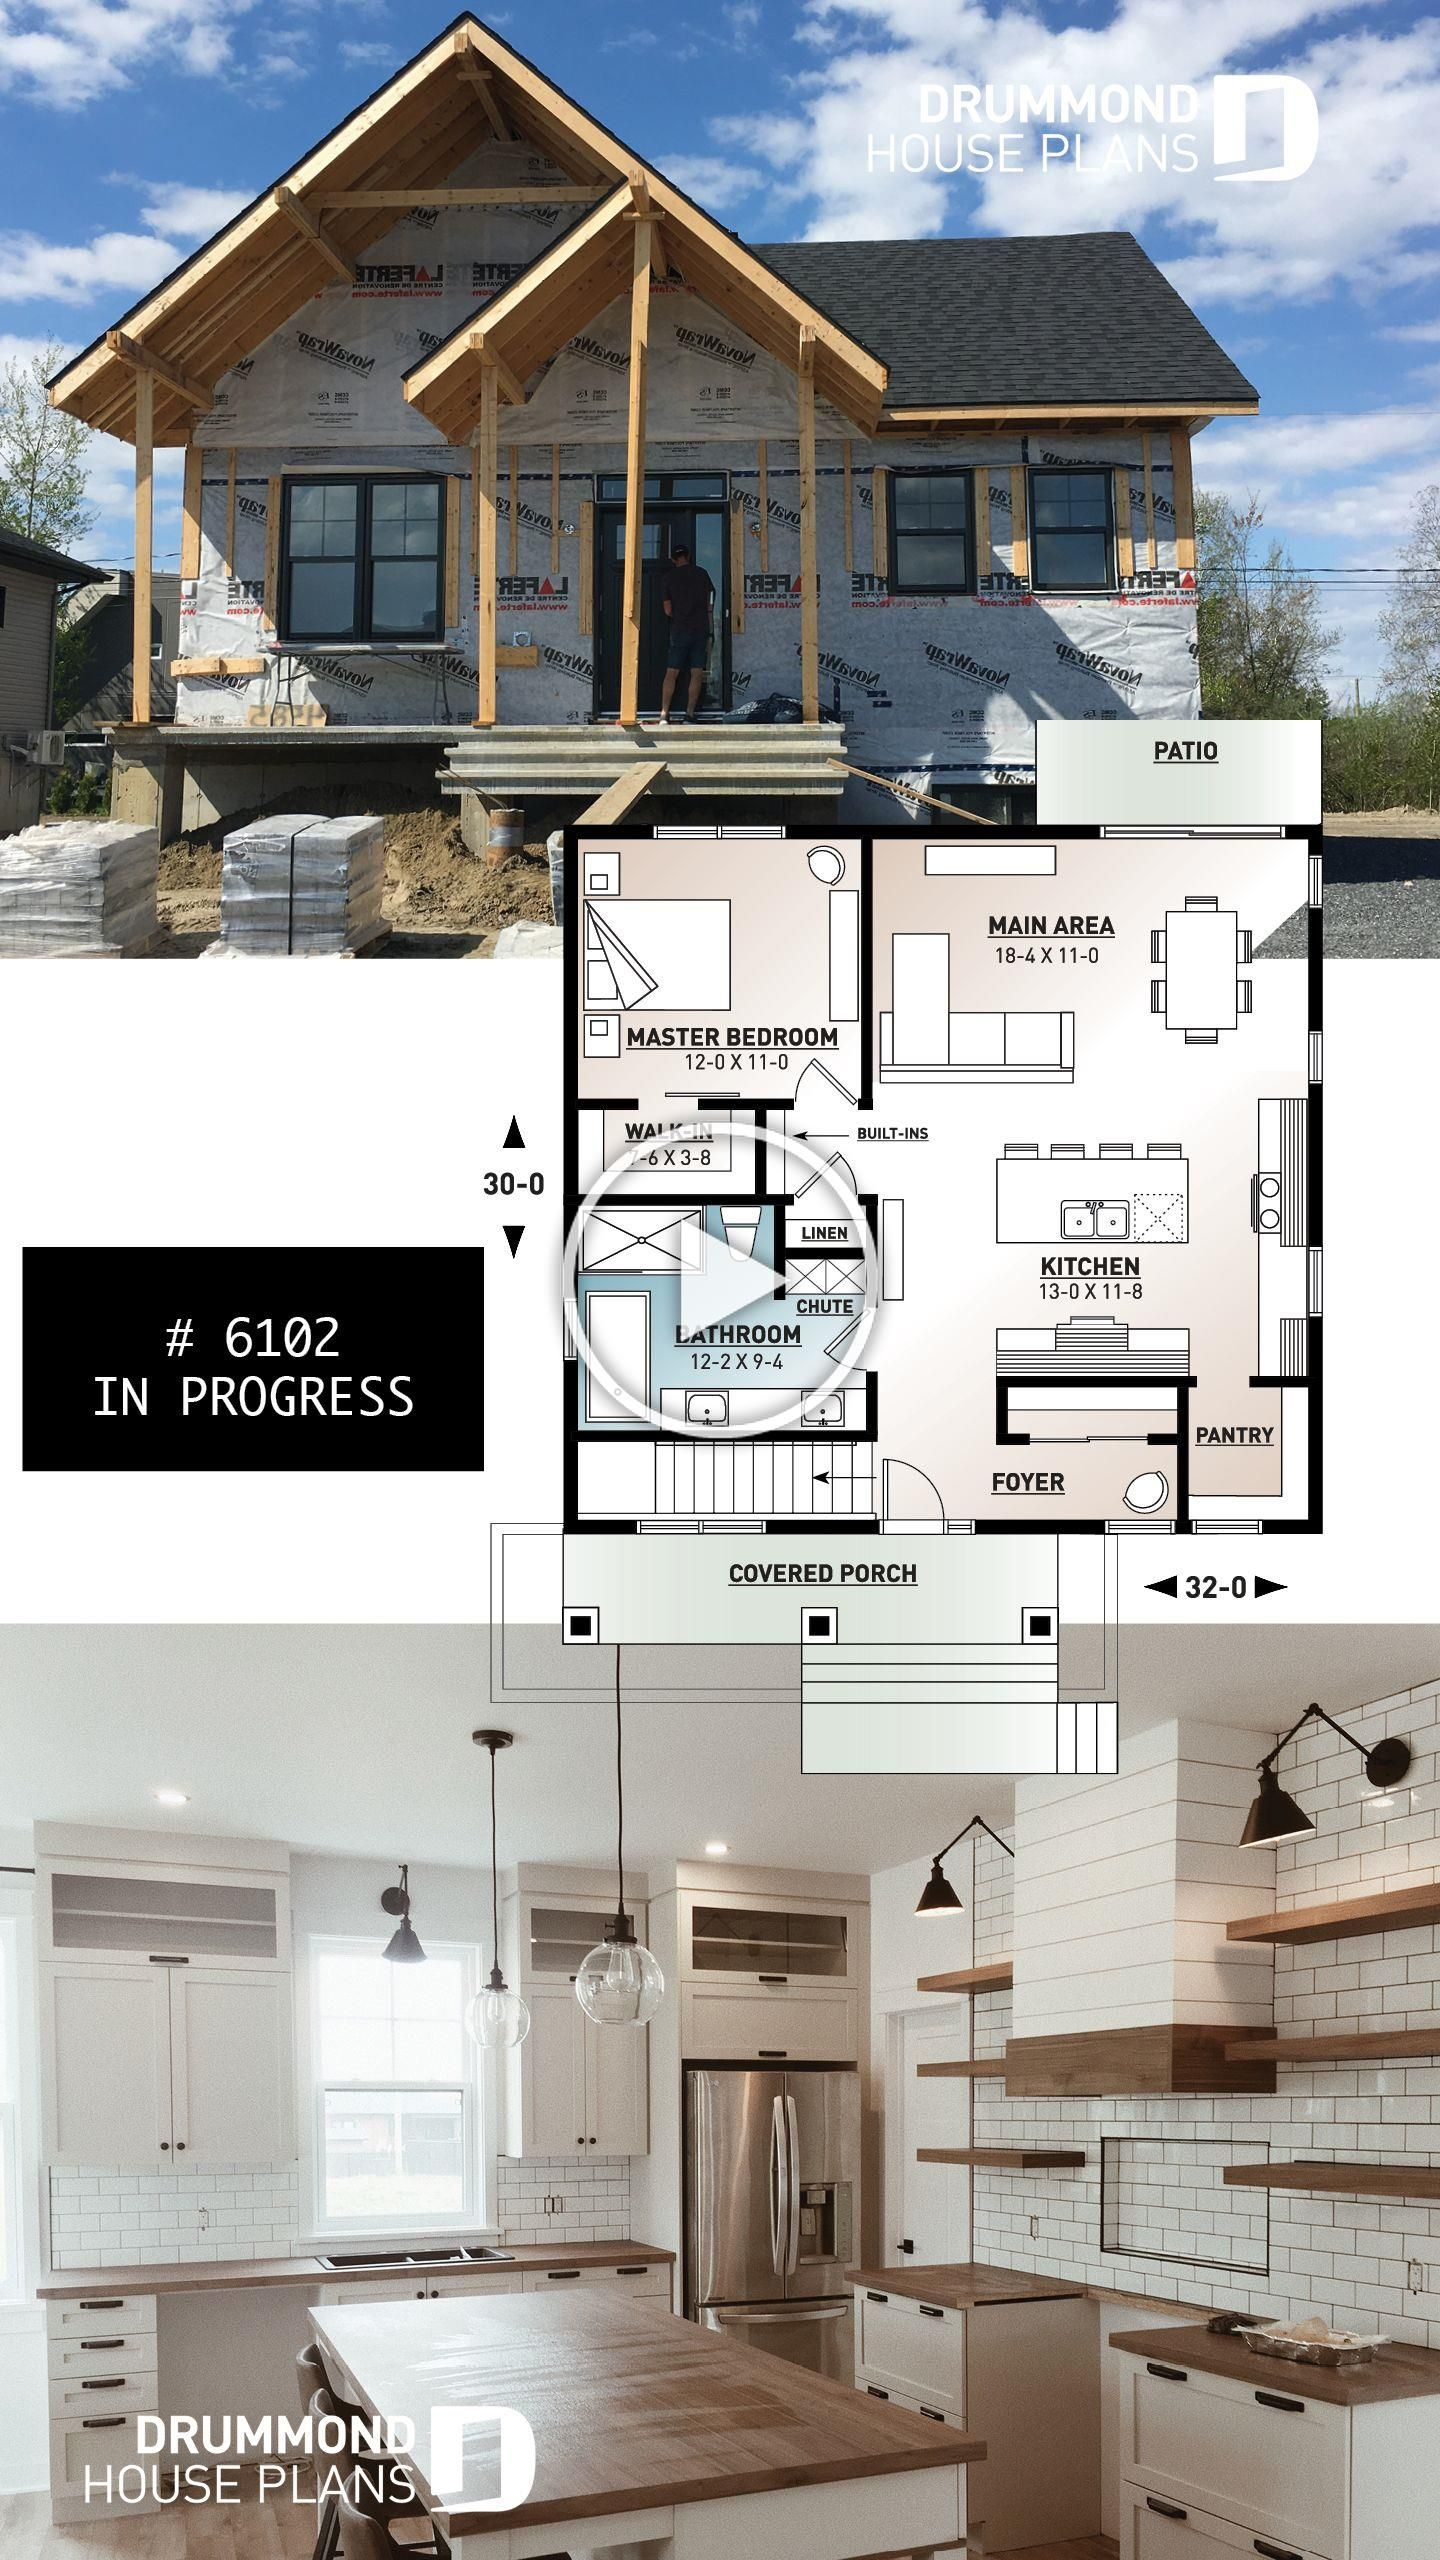 Pin By Karin Ayer On Home Basement House Plans Small Farmhouse Plans Small House Design